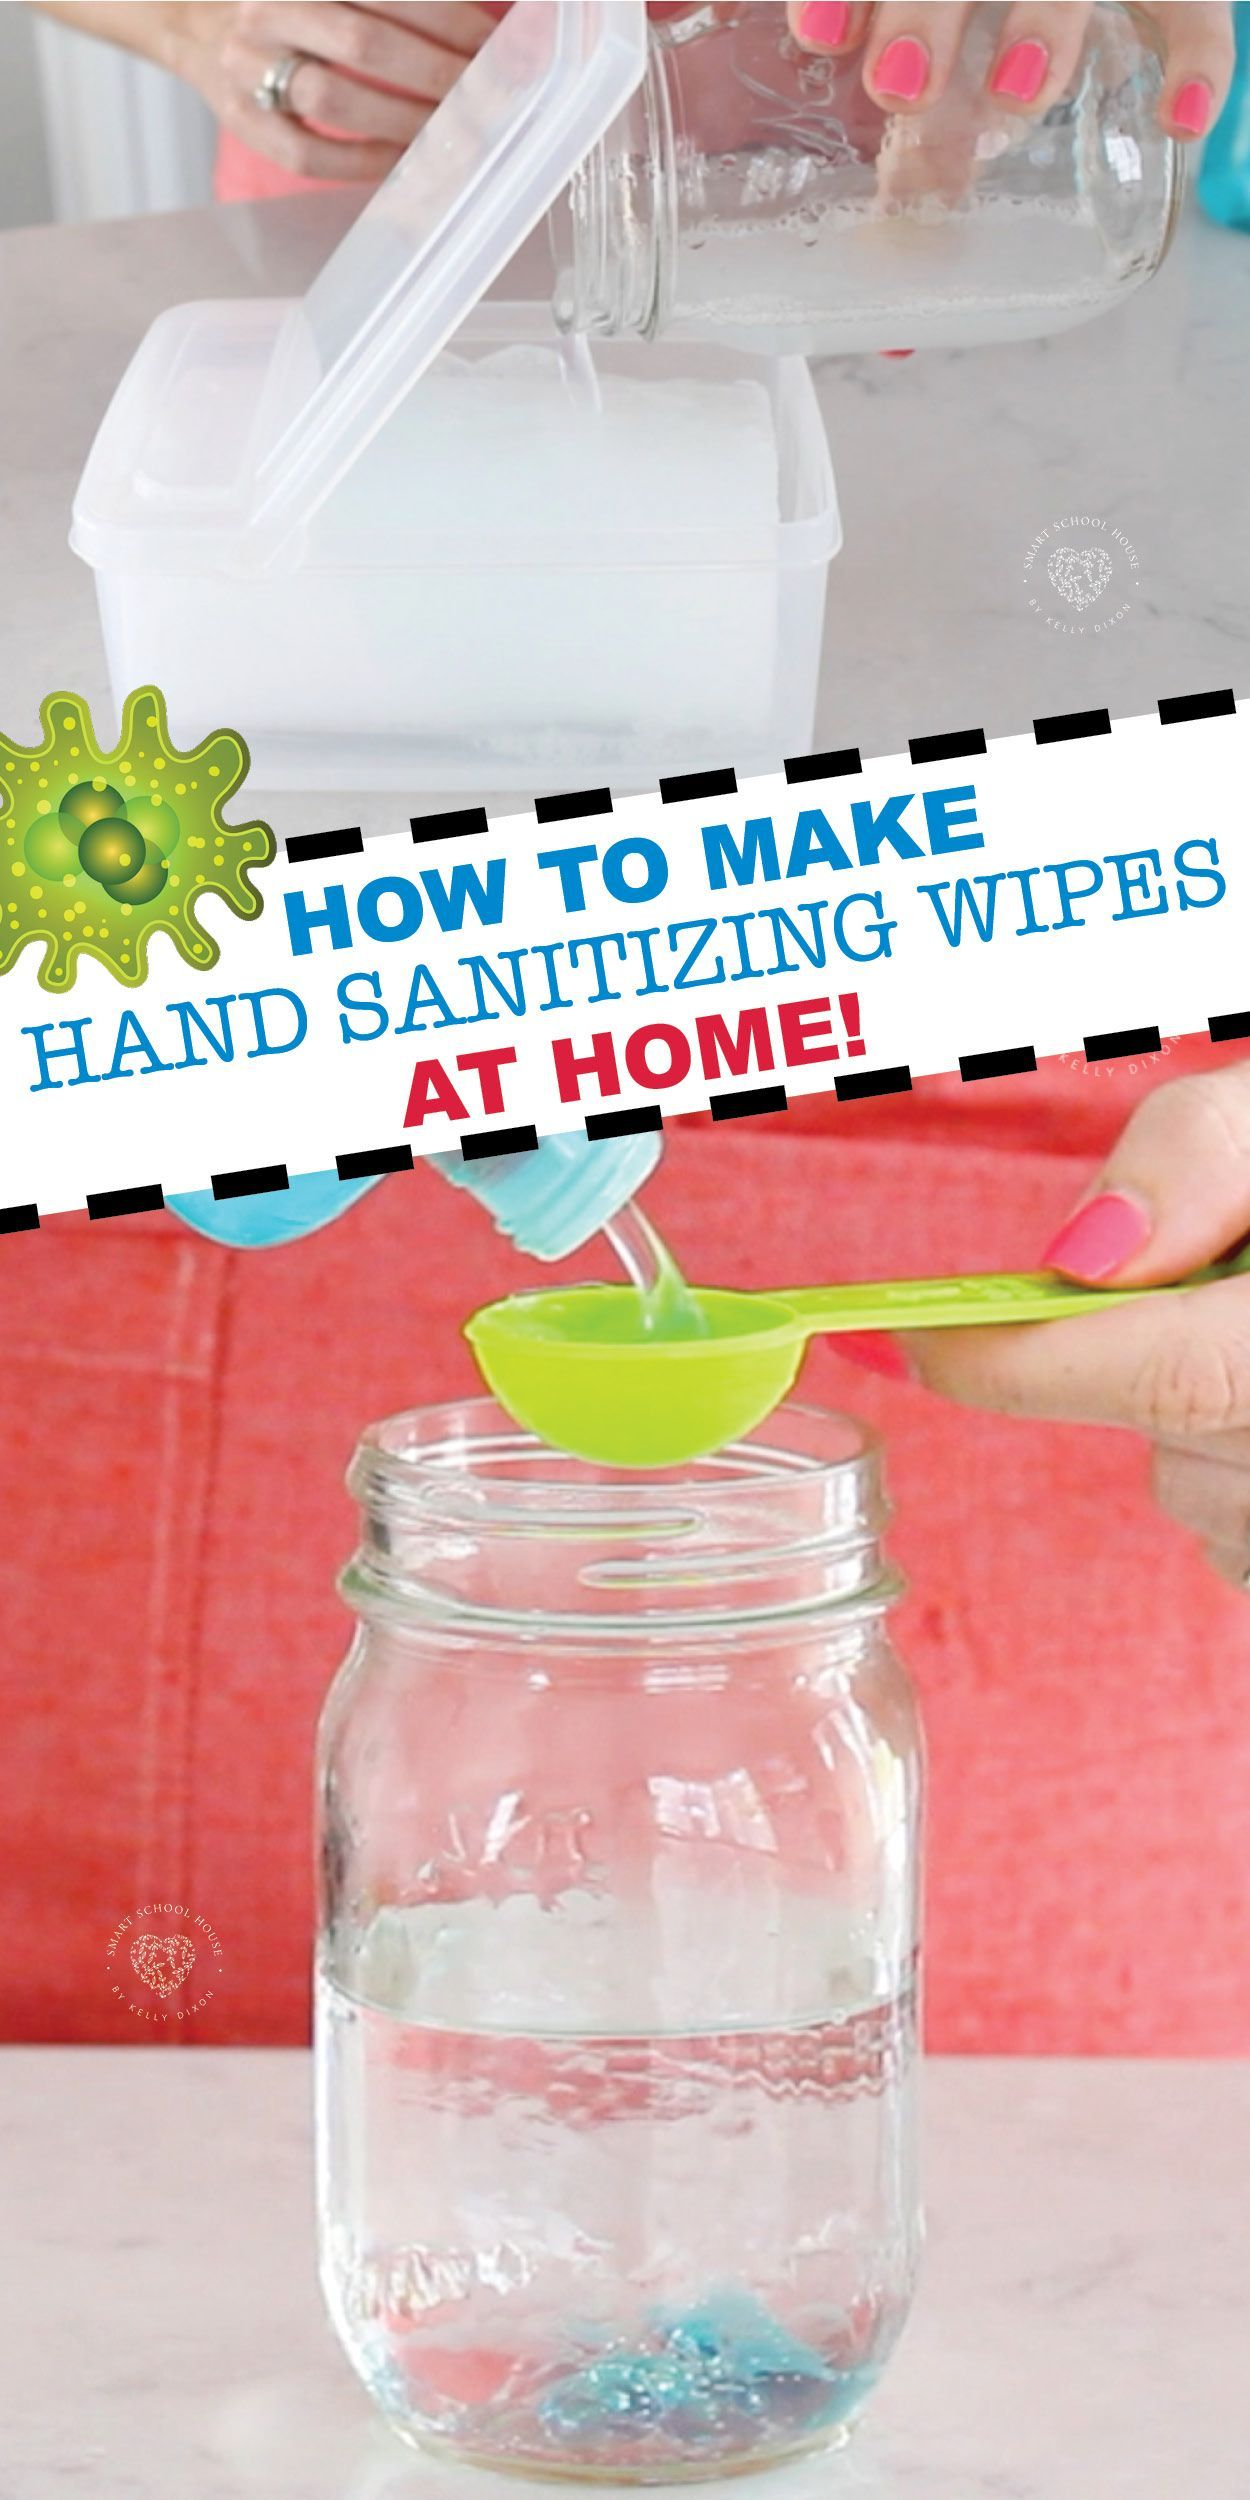 How To Make Hand Sanitizing Wipes At Home How To Make Hand